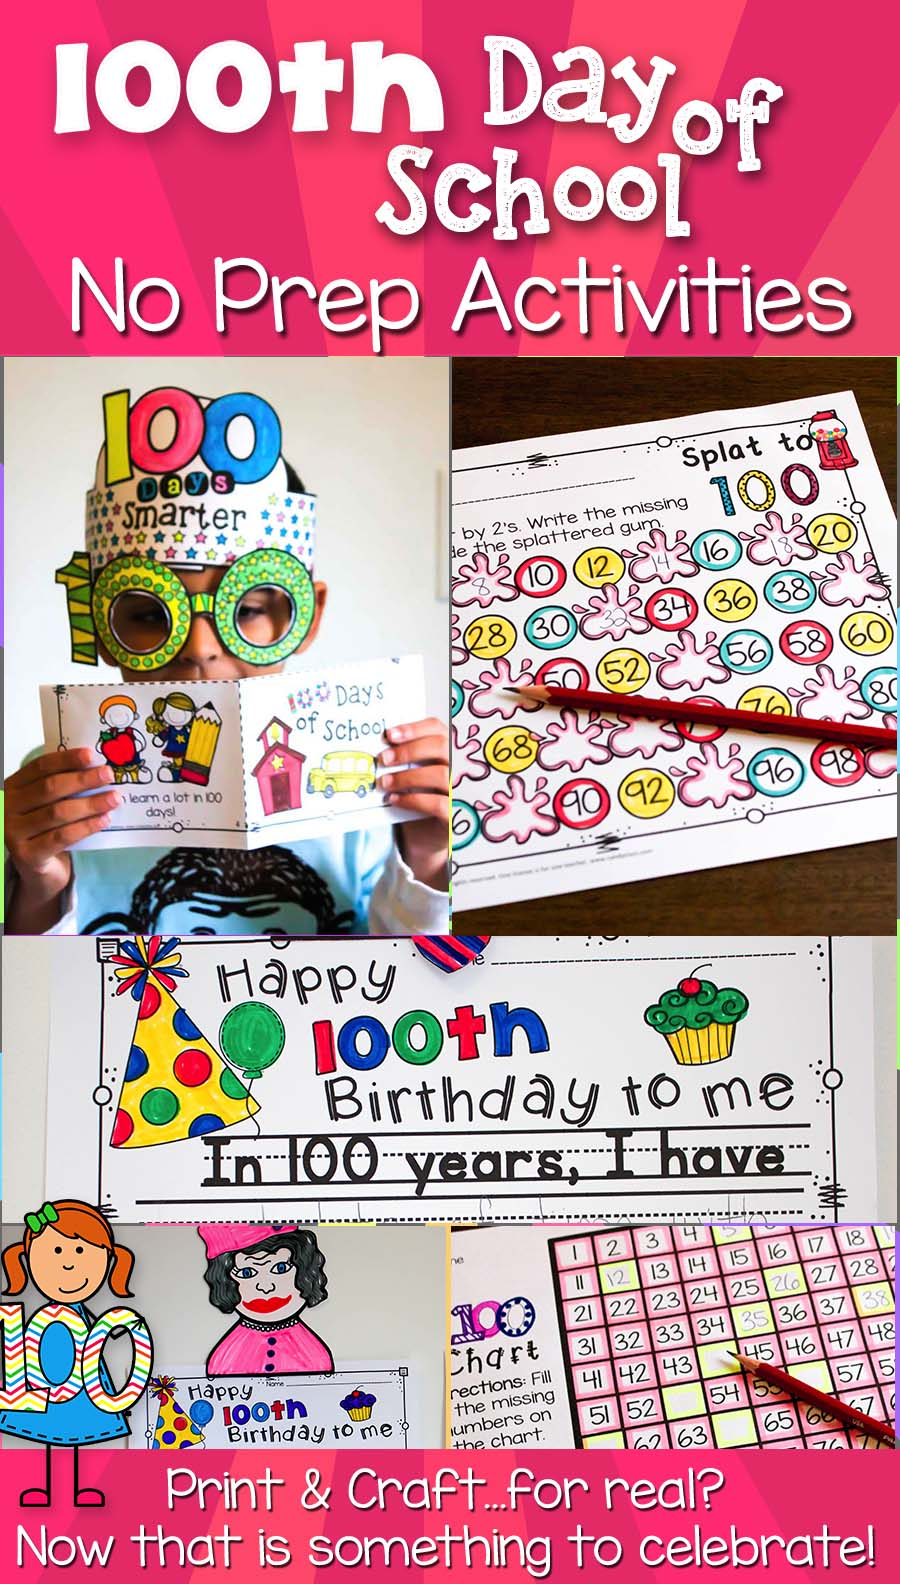 Celebrate the 100th Day of School with a Crown, Glasses, and Fun No Prep Activities